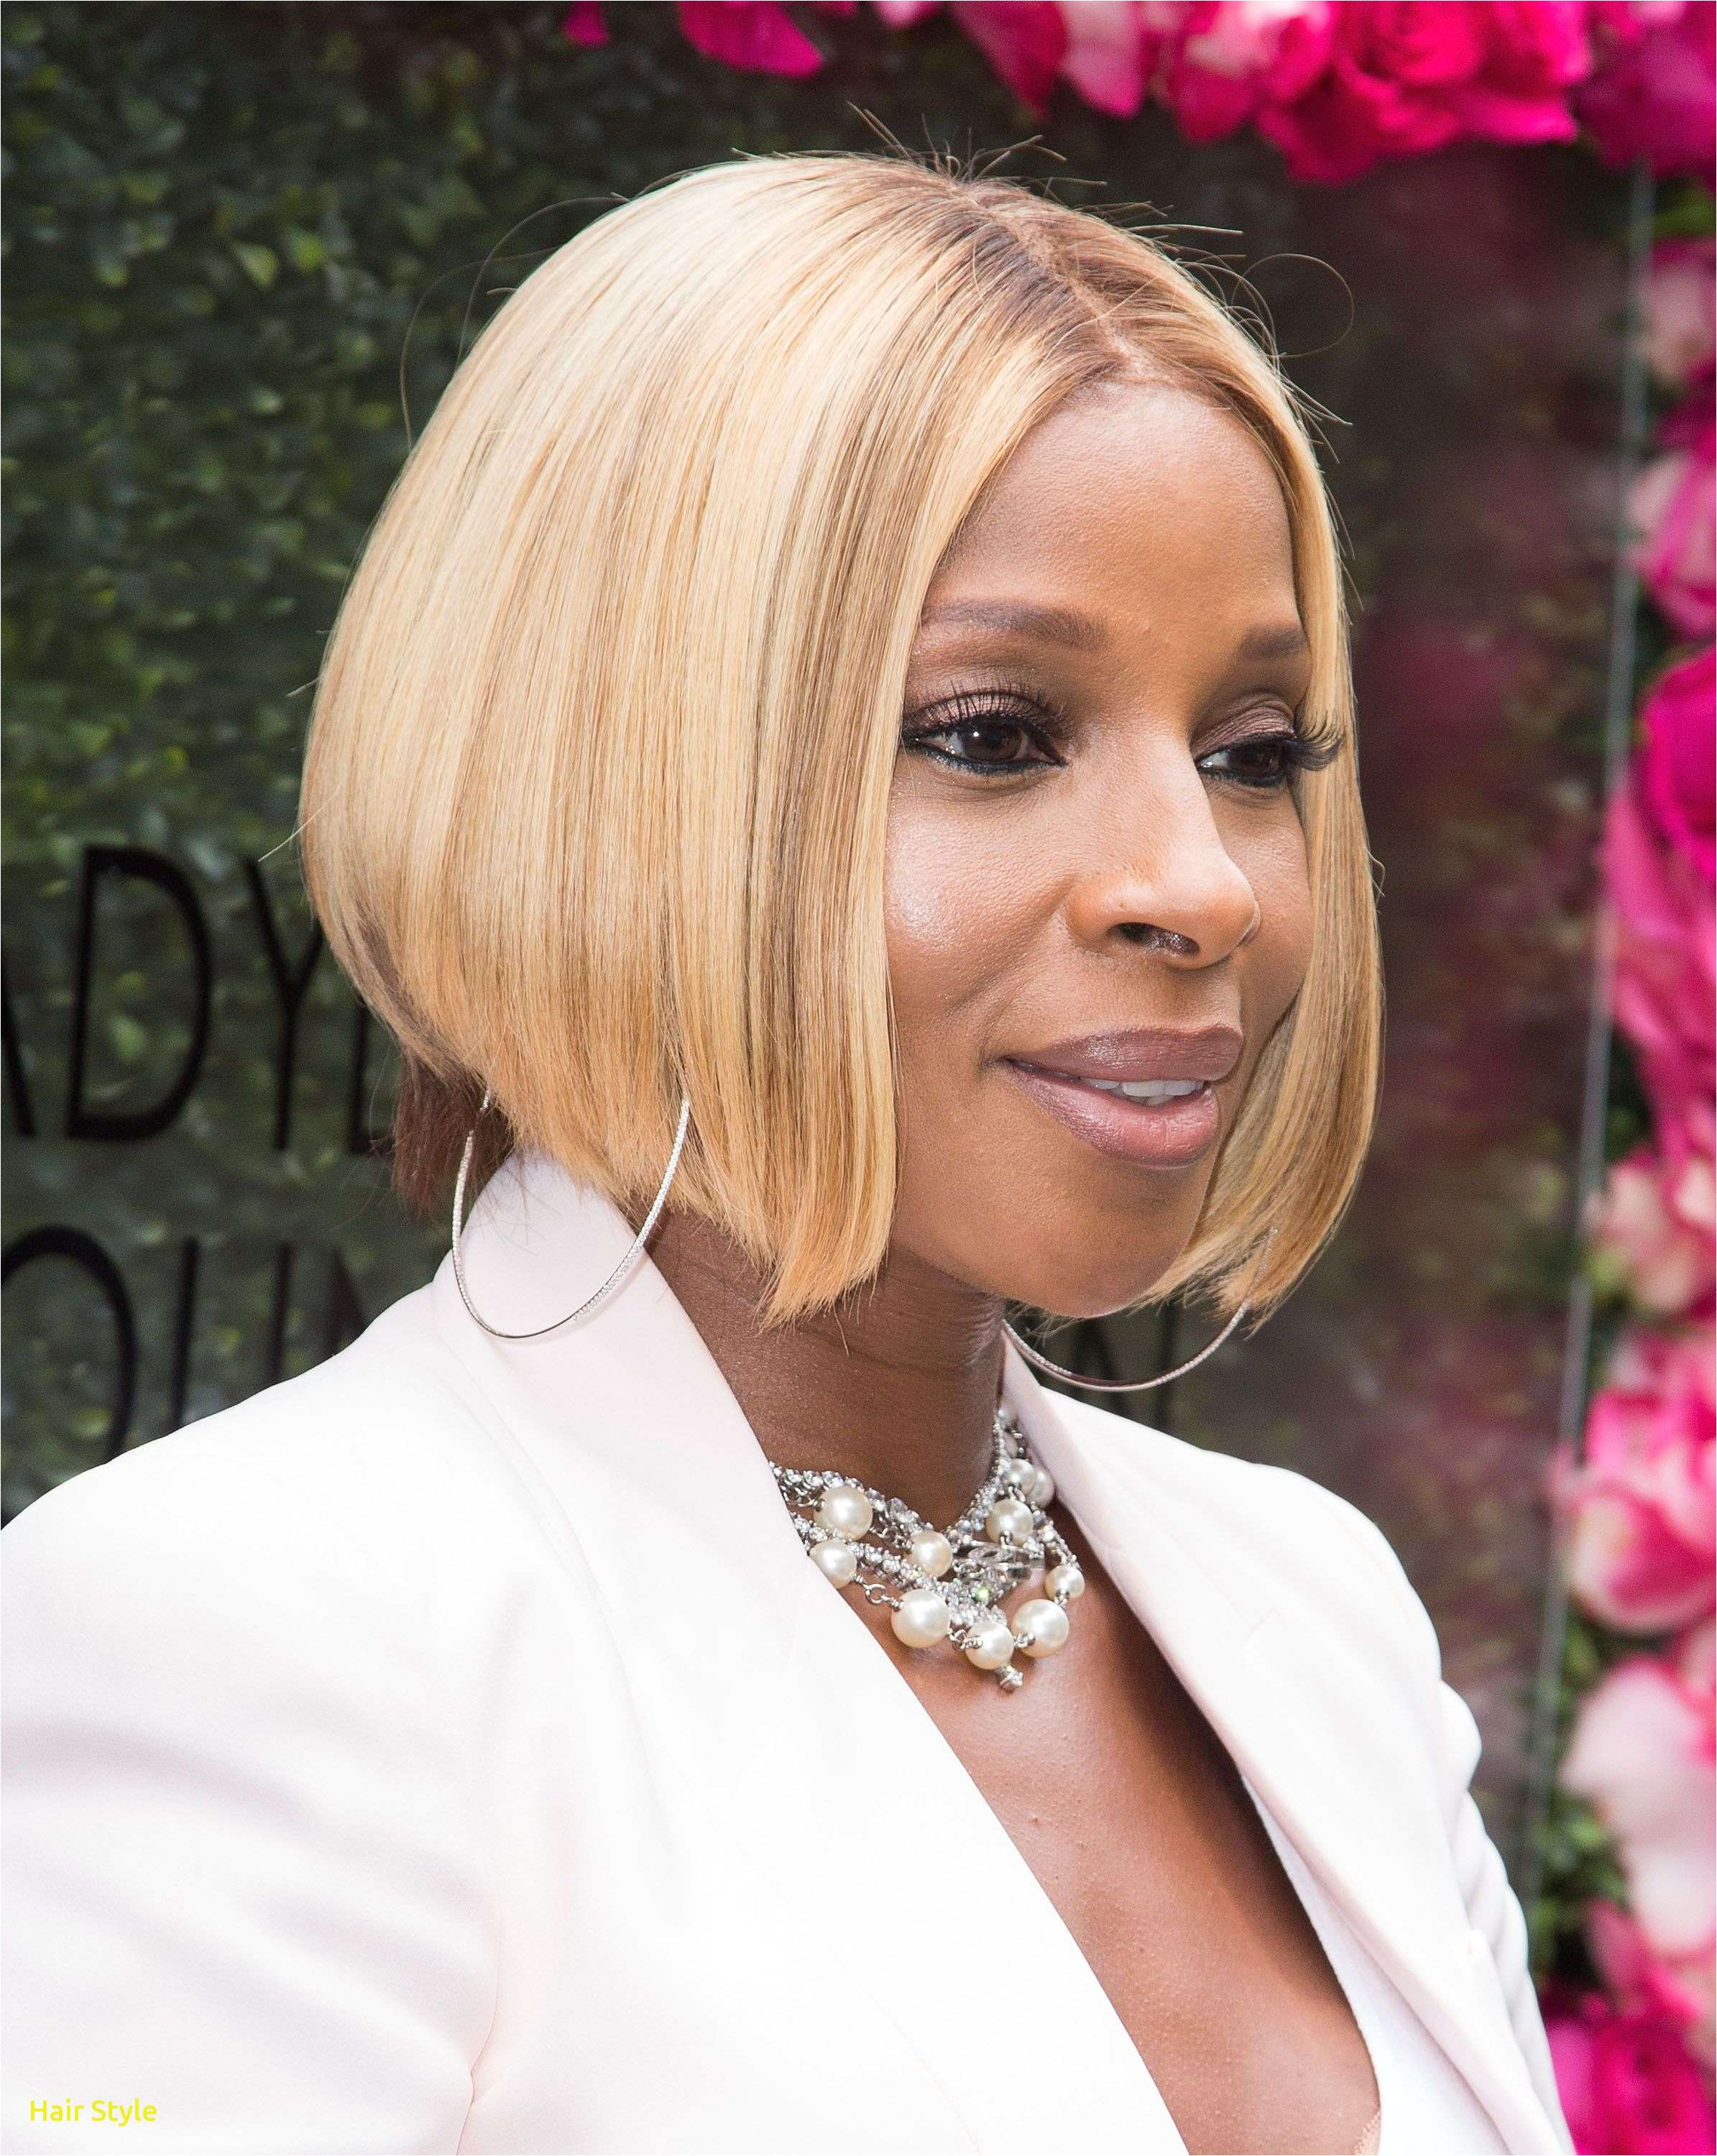 black bob hairstyle best image result for mary j blige hairstyle